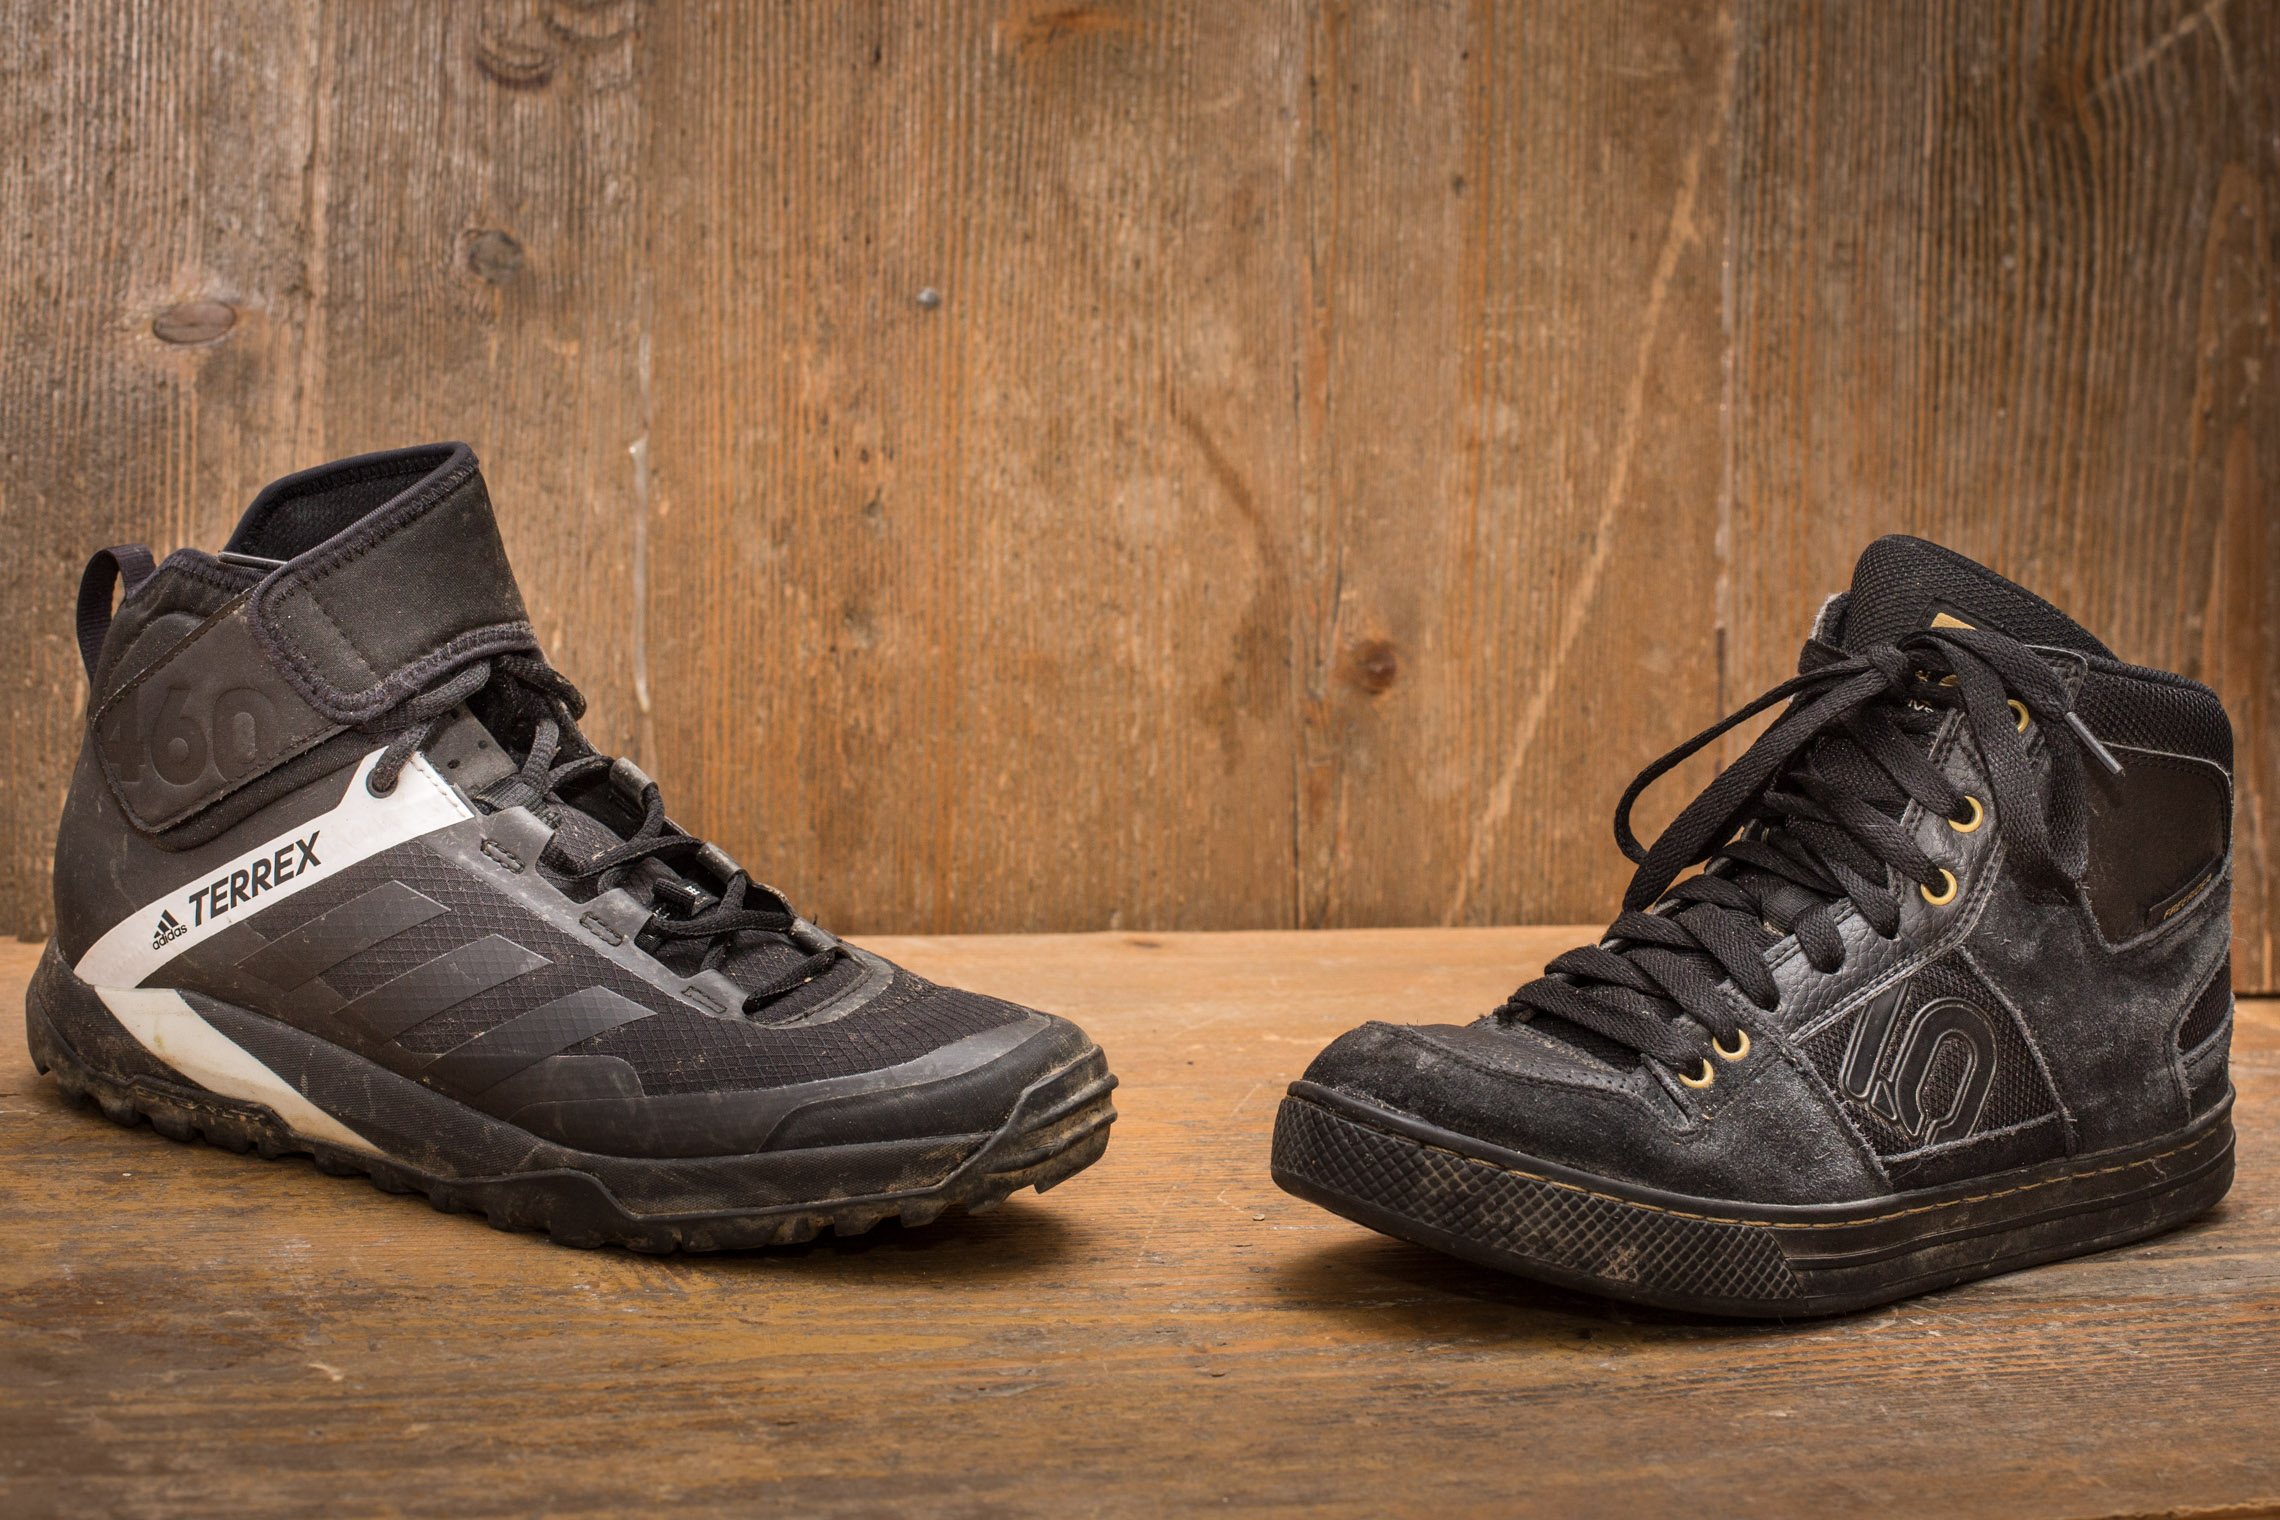 7970acd55259 Hohe Bikeschuhe im Test  Five Ten Freerider vs. Adidas Terrex Trailcross